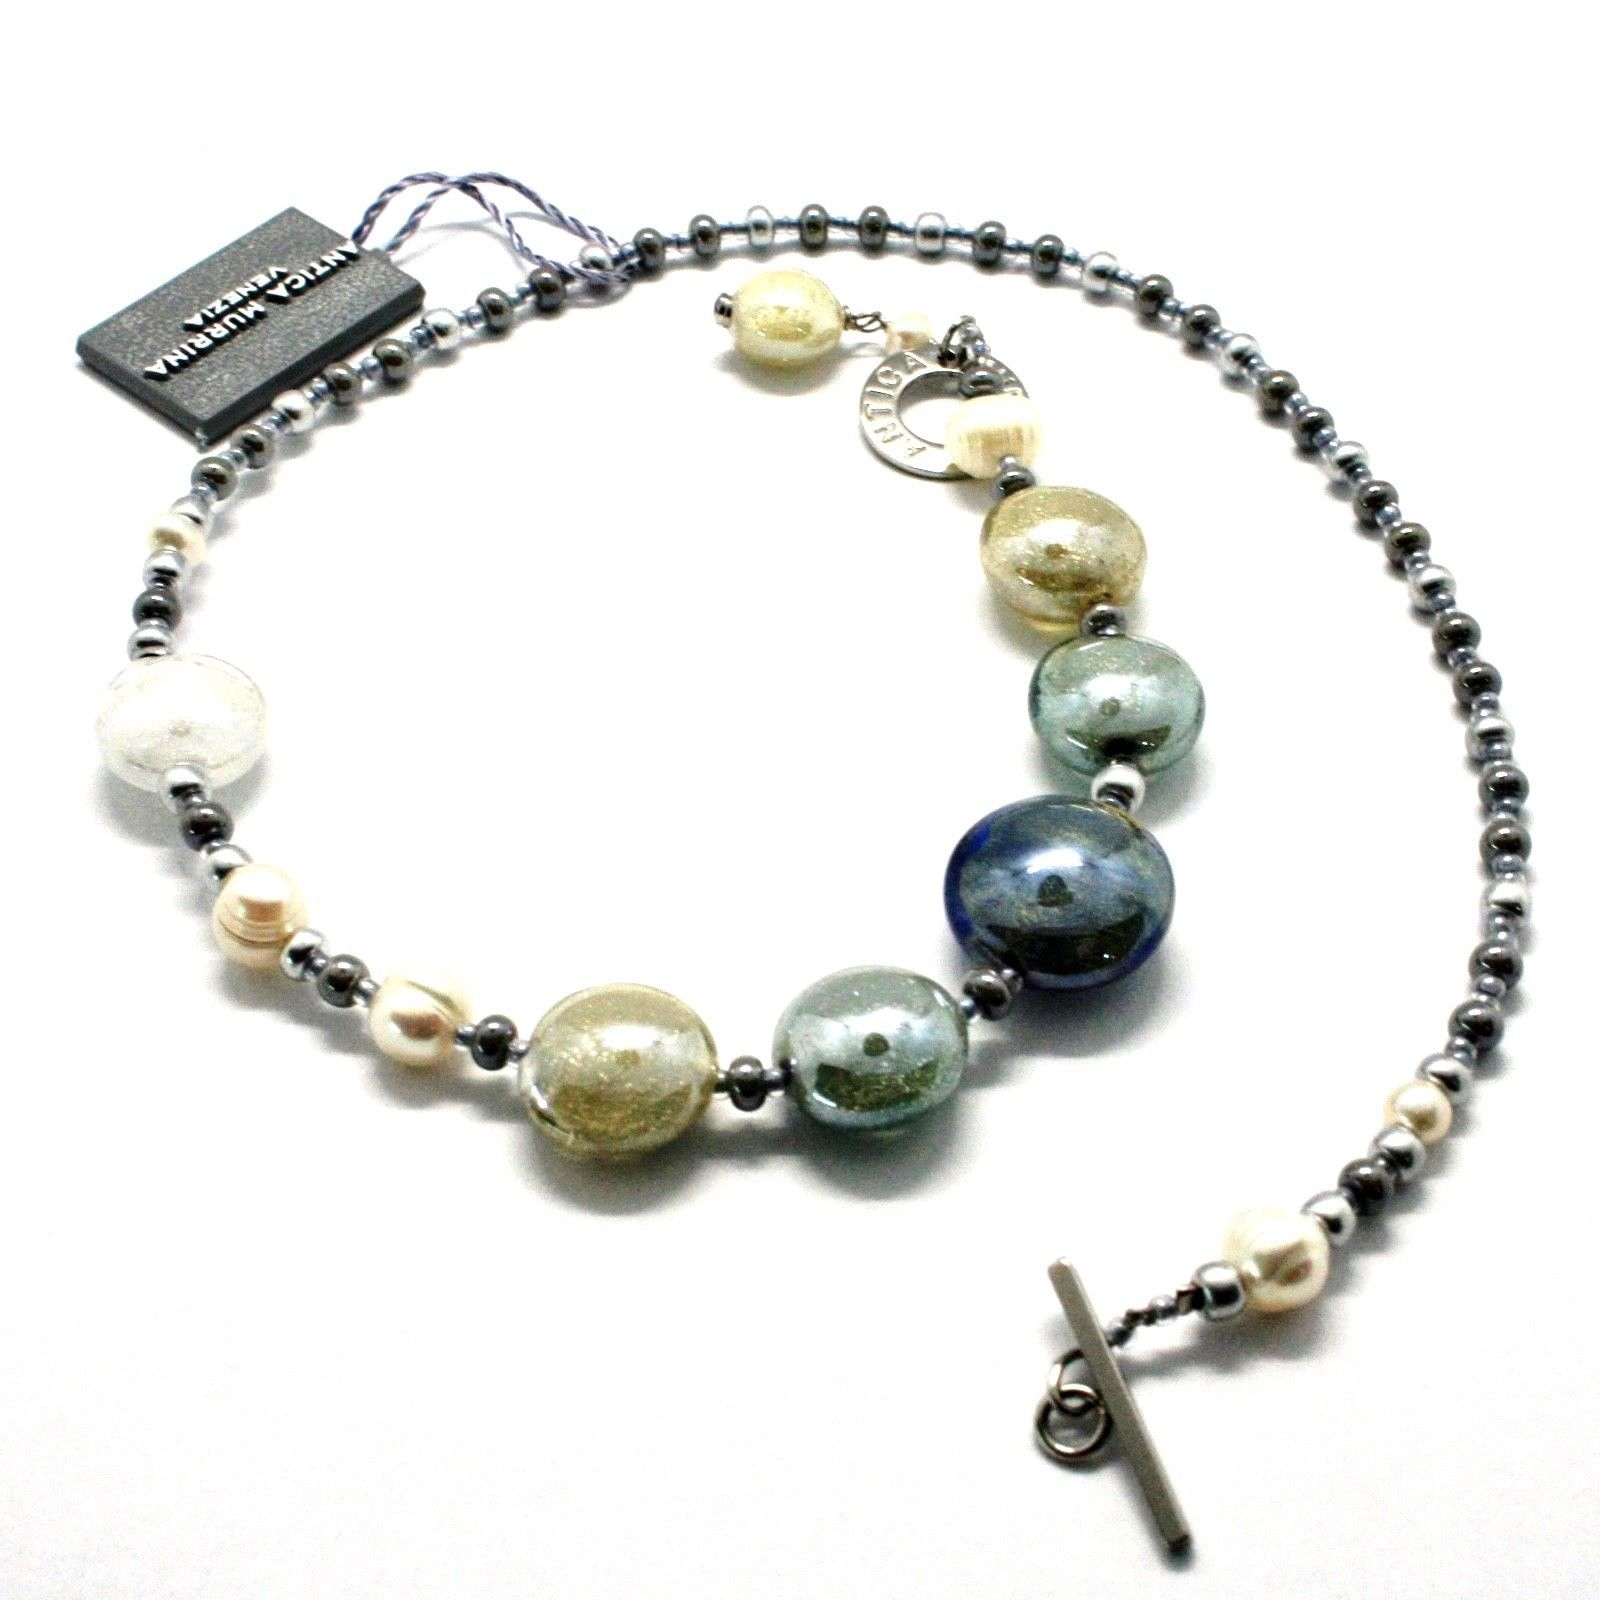 NECKLACE ANTIQUE MURRINA VENICE WITH MURANO GLASS BEIGE SAND GRAY COB14A06